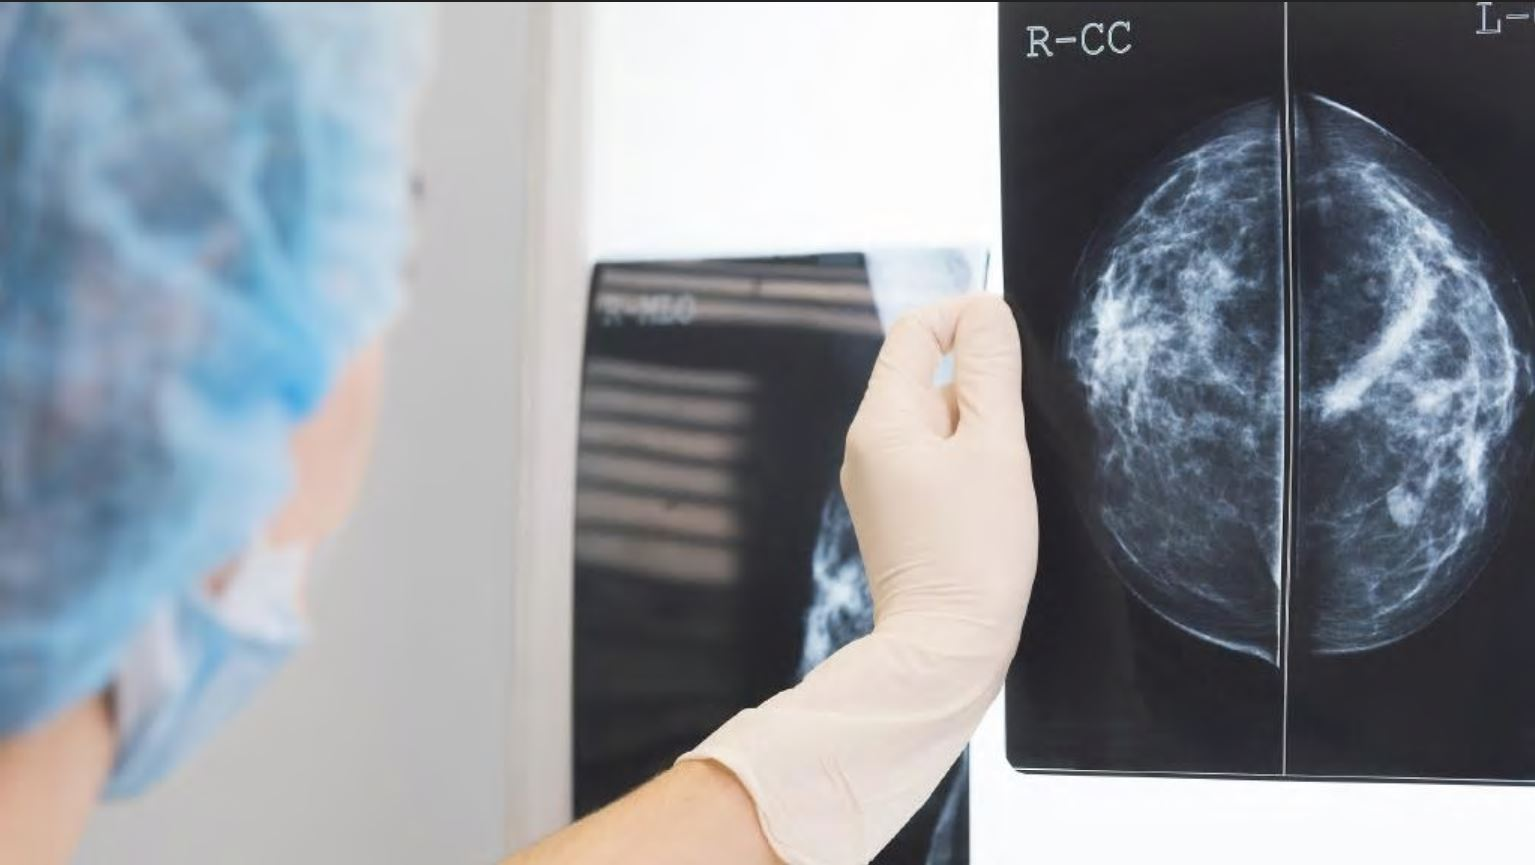 New Melbourne research has created sharper and more detailed images of mammograms that will improve breast cancer screening.